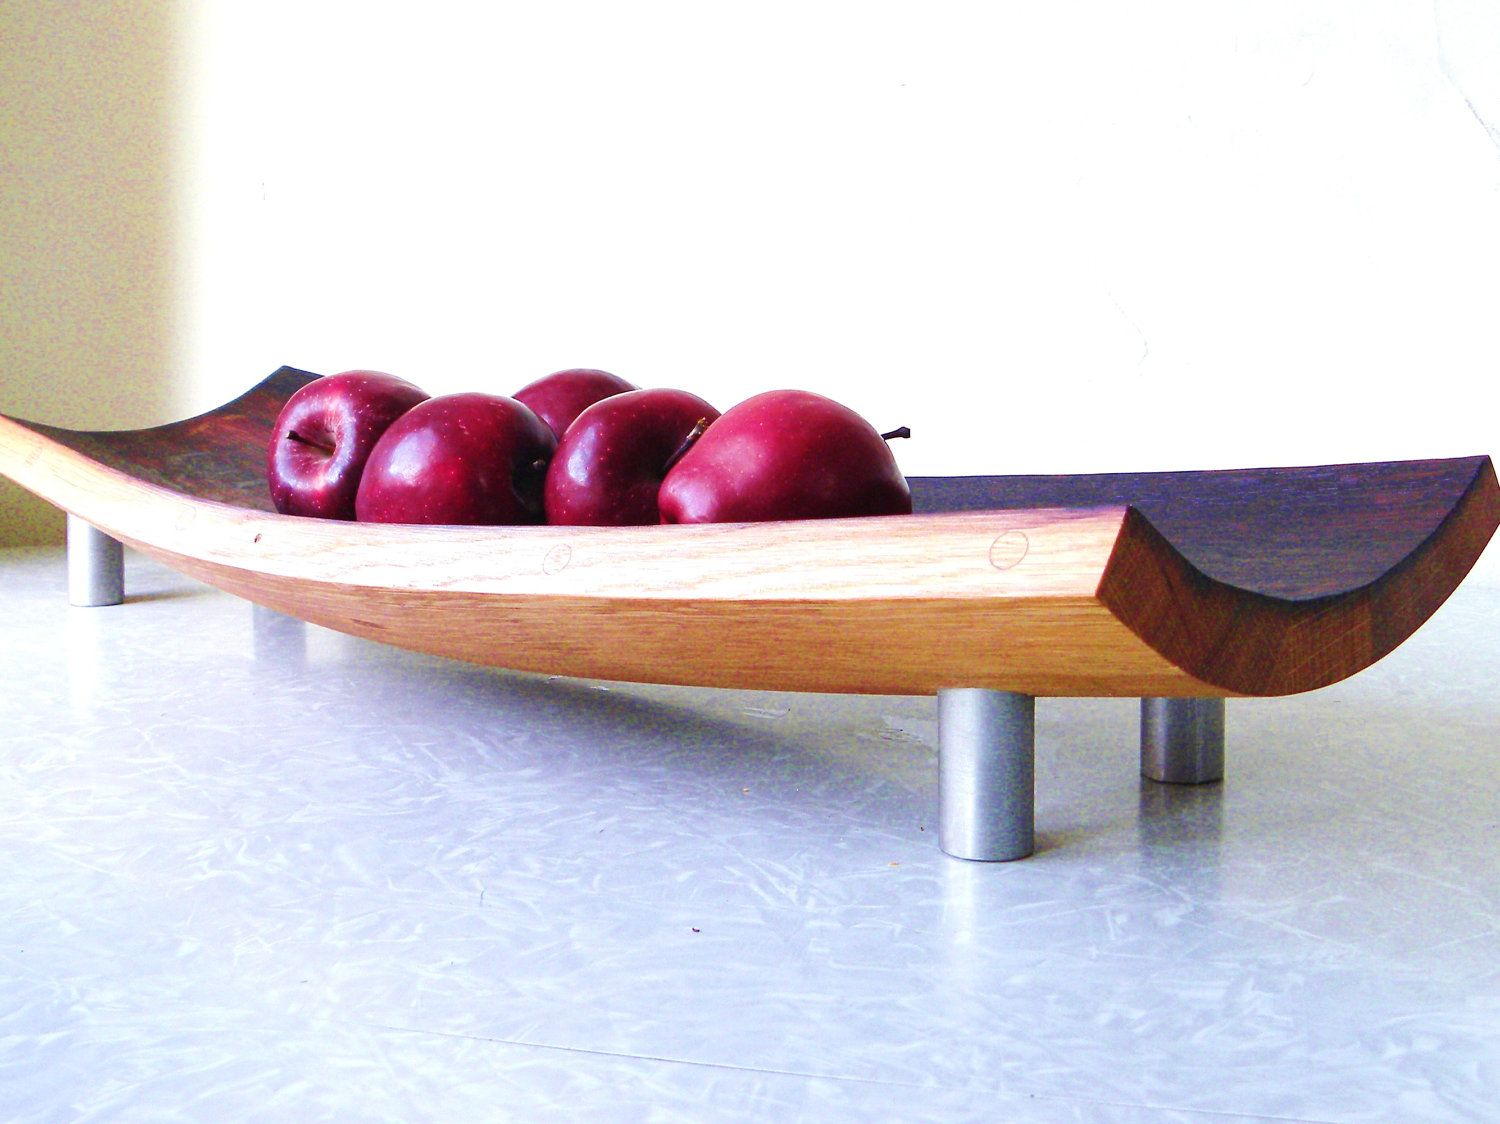 Modern serving tray Bamboo Mid Century Modern Serving Tray Bowl Platter Repurposed Wine Barrel Eco Friendly Gift French Oak Cutting Board 19000 Via Etsy Pinterest Mid Century Modern Serving Bowl Platter Repurposed Wine Barrel Eco